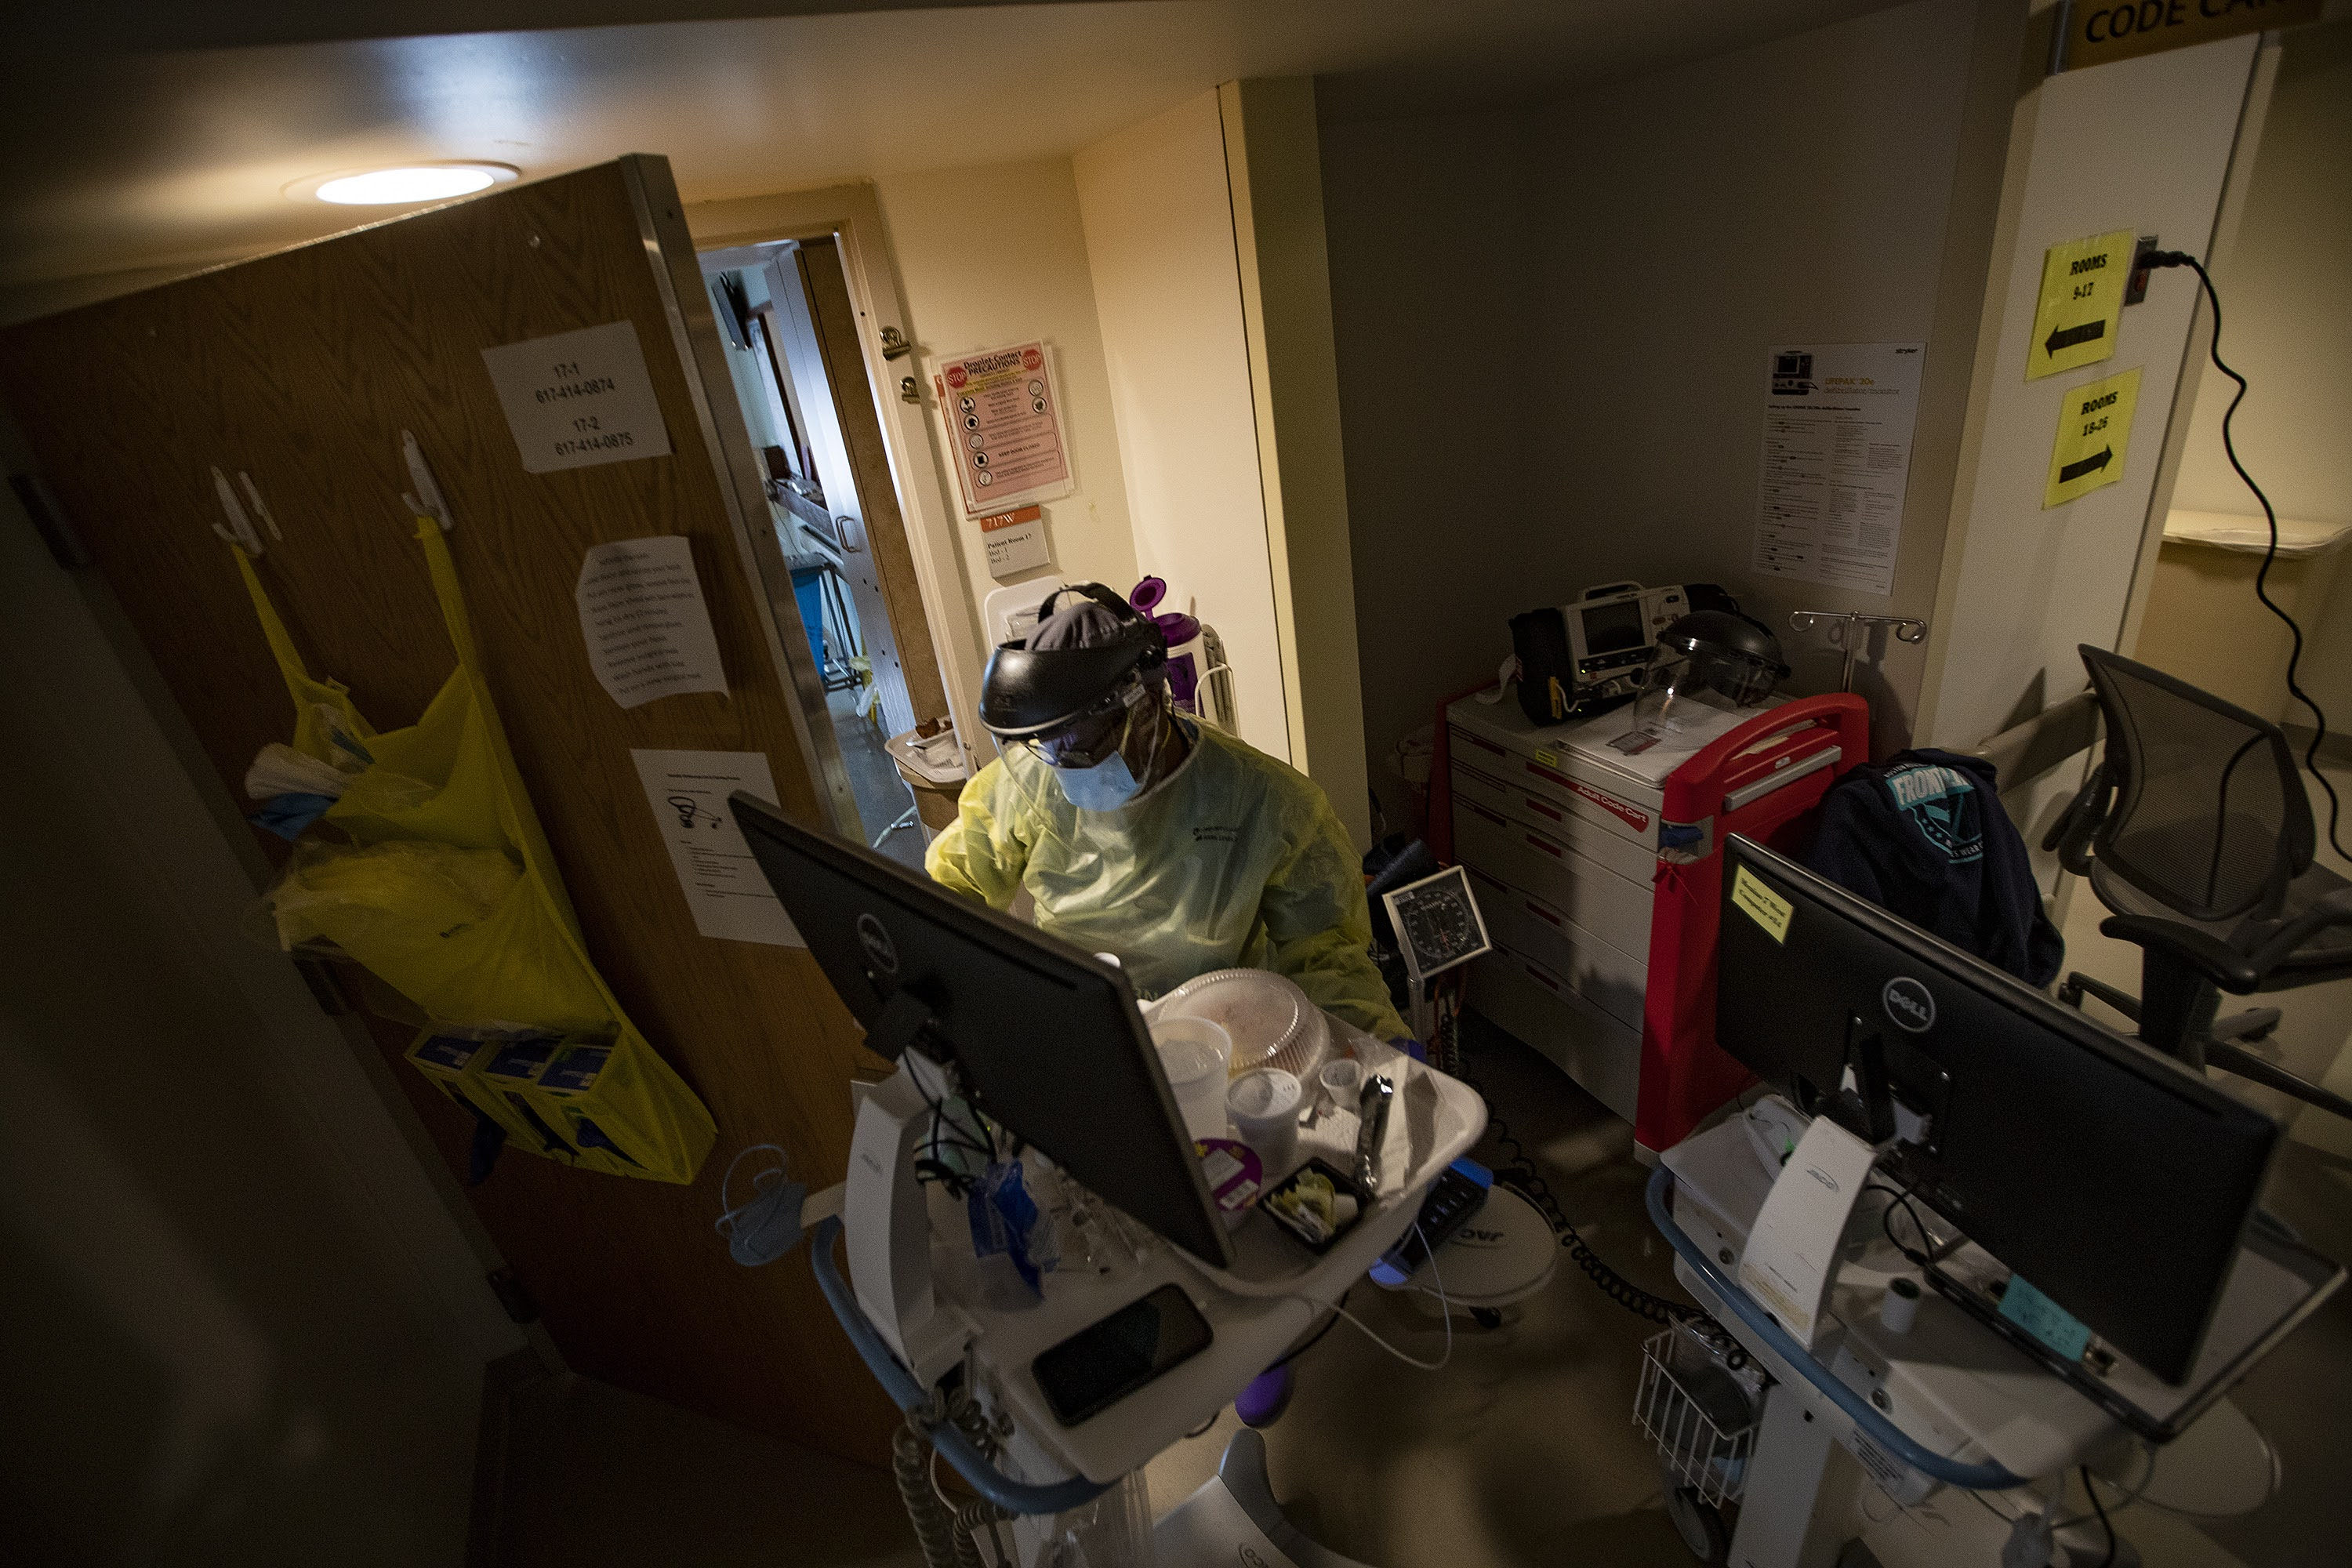 Boston Medical Center registered nurse Ellen Stephenson prepares to enter a room of a COVID-19 patient with supplies. (Jesse Costa/WBUR)